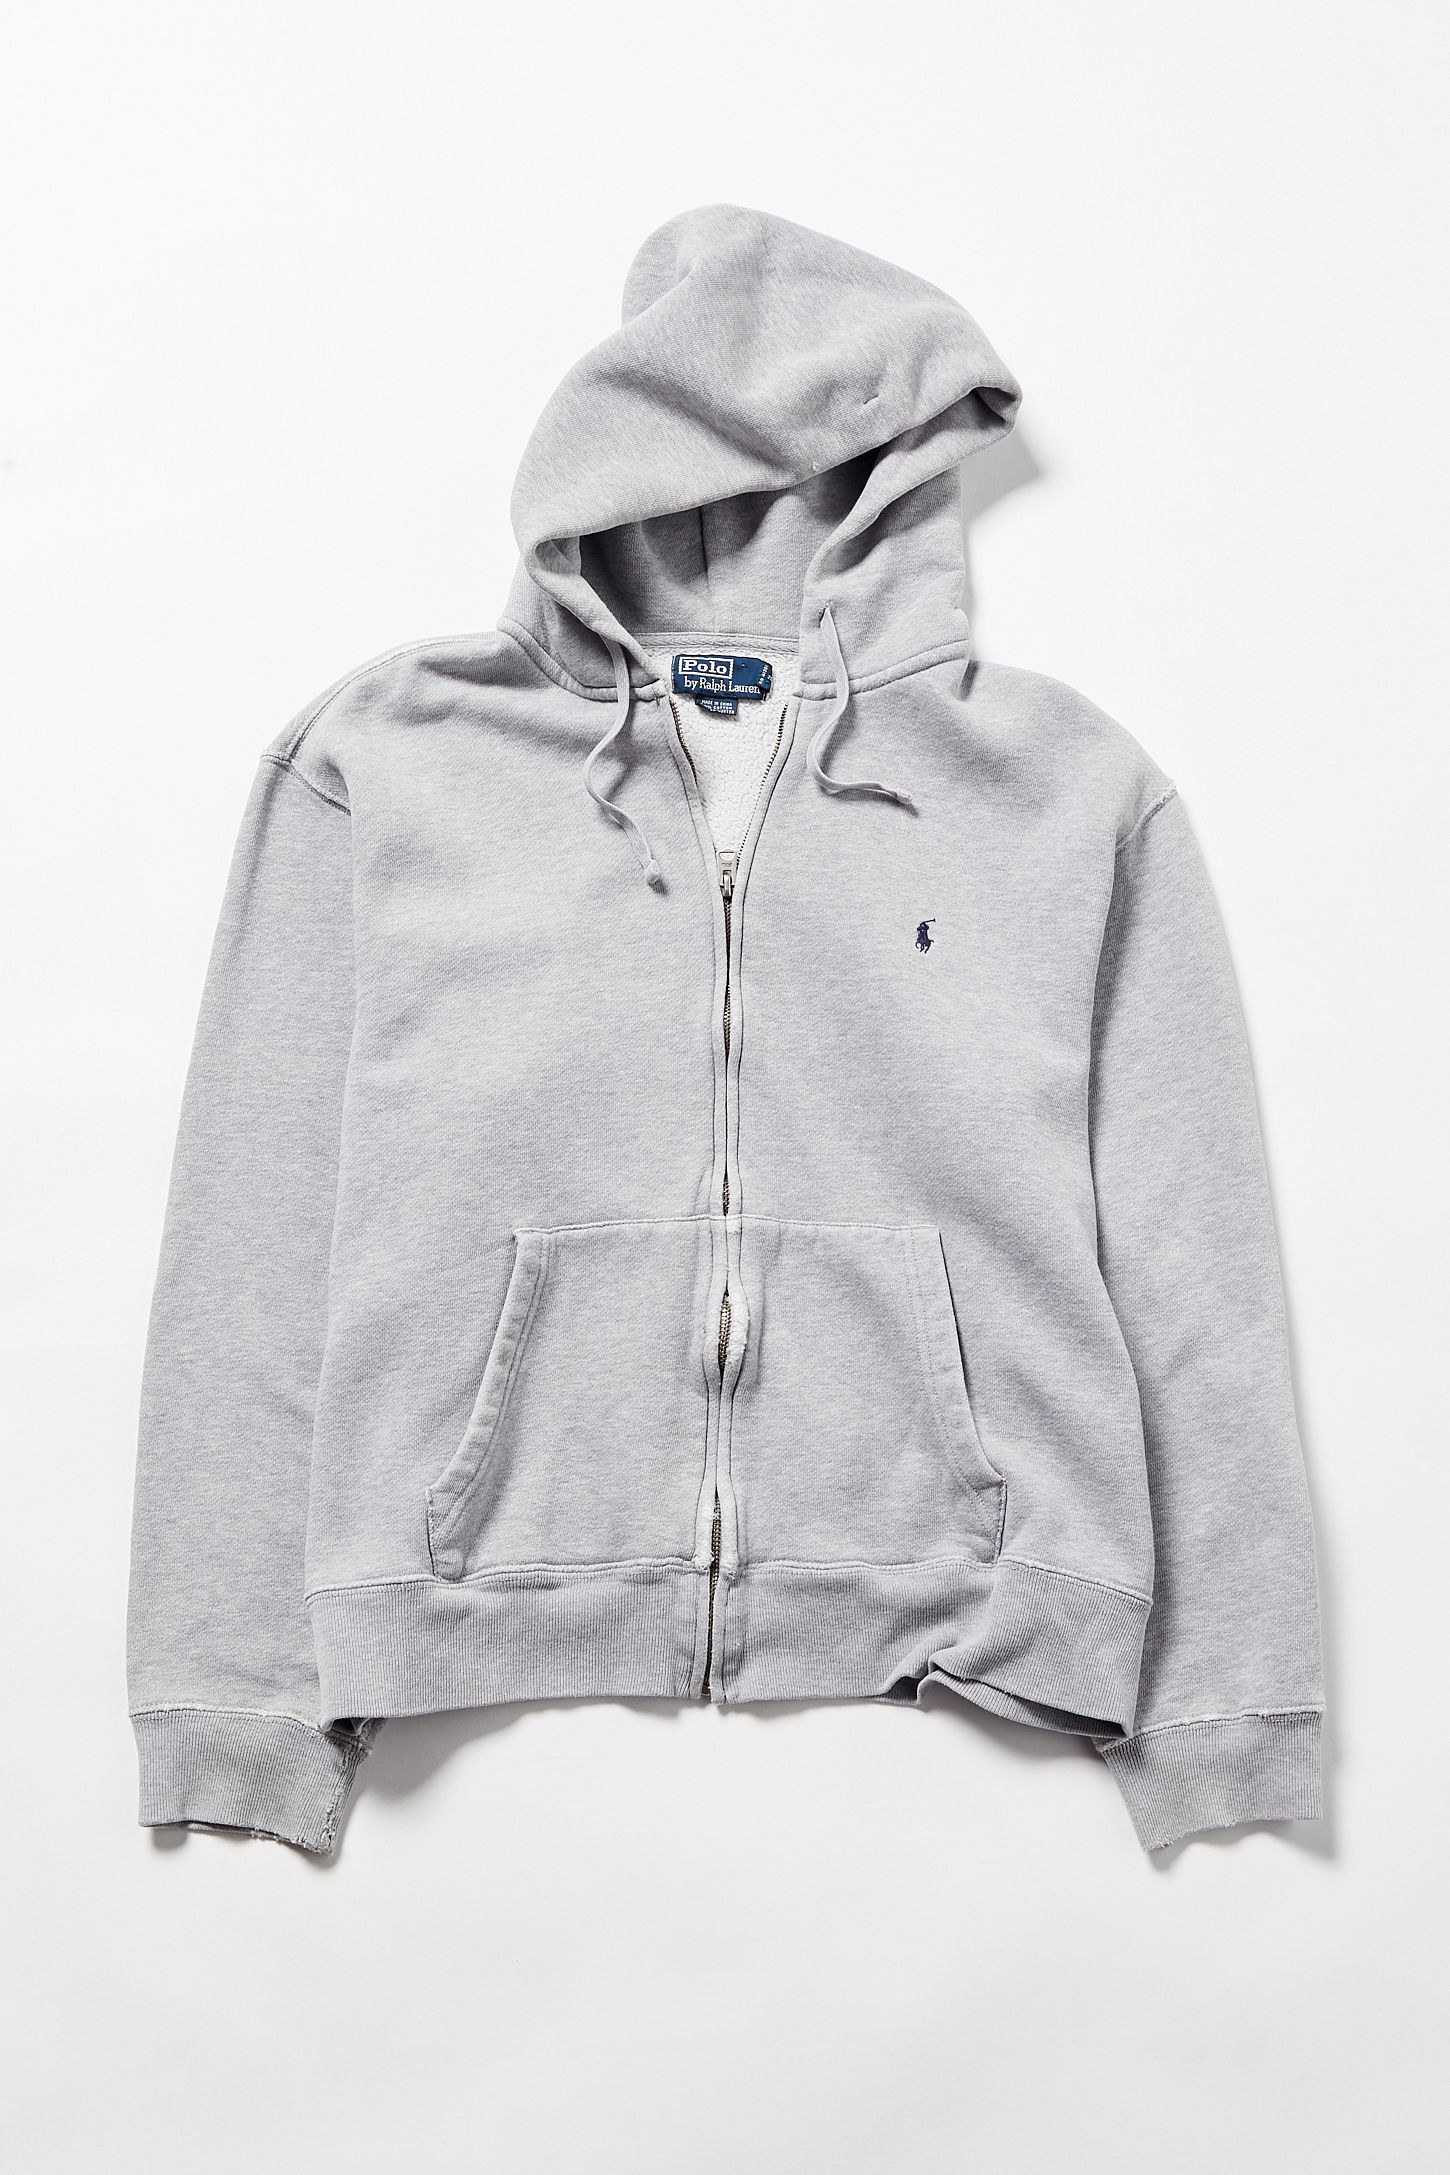 a3bc72847 Vintage Polo Ralph Lauren Grey Zip-Front Hoodie Sweatshirt. Tap image to  zoom. Hover to zoom. Double Tap to Zoom